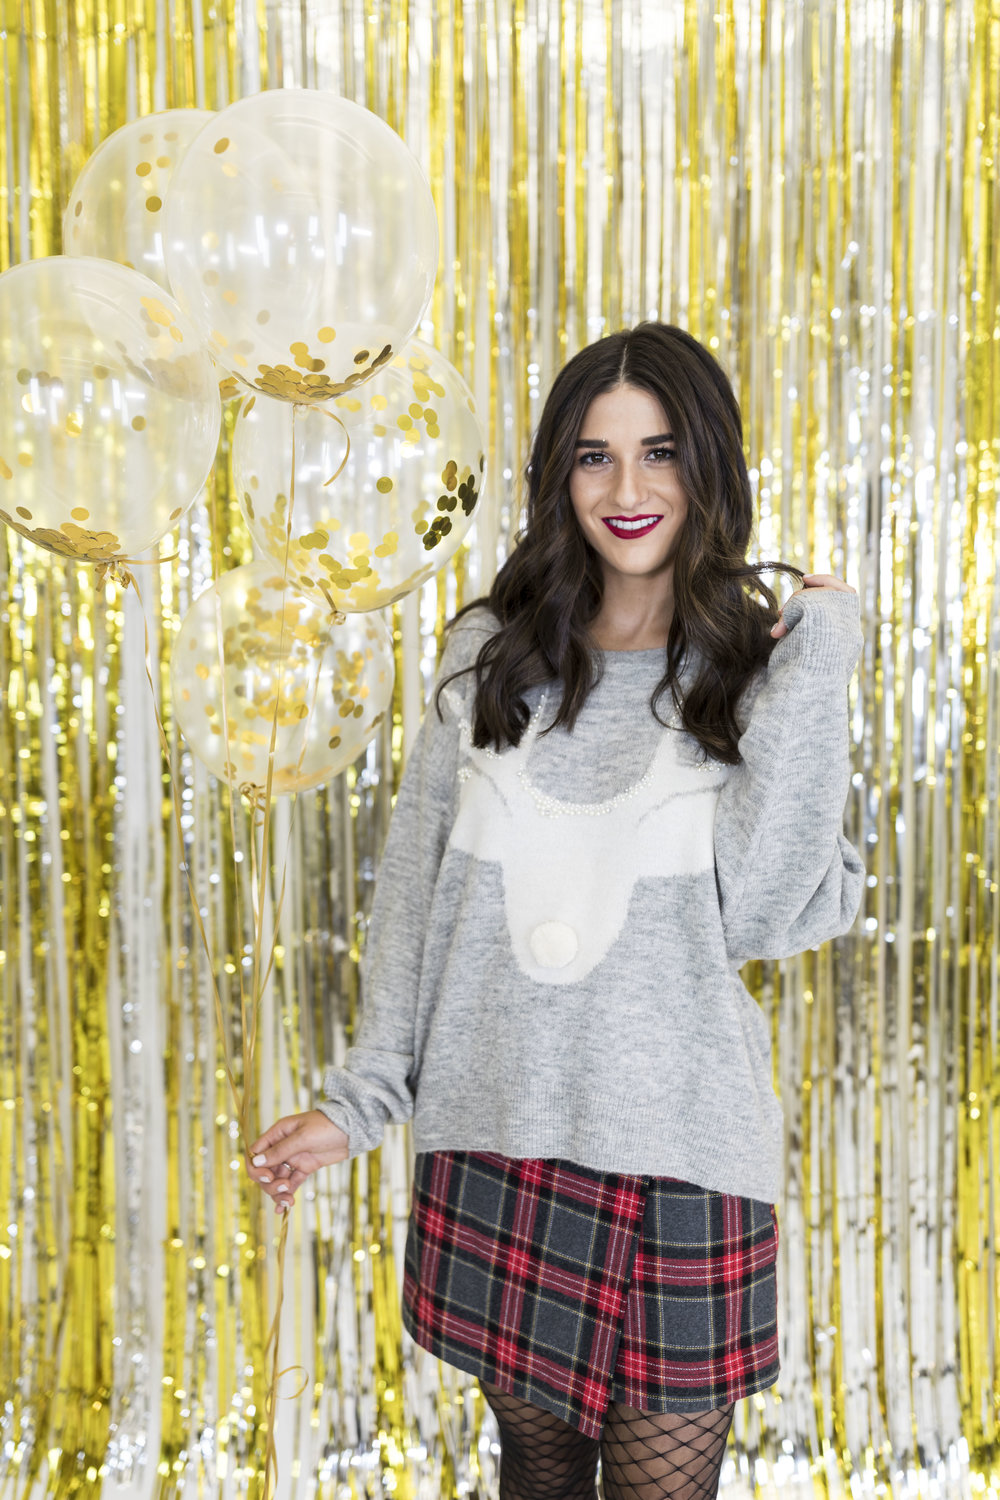 H&M Holiday Video Collab Esther Santer Fashion Blog NYC Street Style Blogger Outfit OOTD Trendy Confetti Streamers Balloons Presents Gift Wrap Shopping Wear Stylist Photoshoot Sweater Plaid Skirt DryBar Hairstyle Girl Friends Smile Jewelry Accessories.jpg